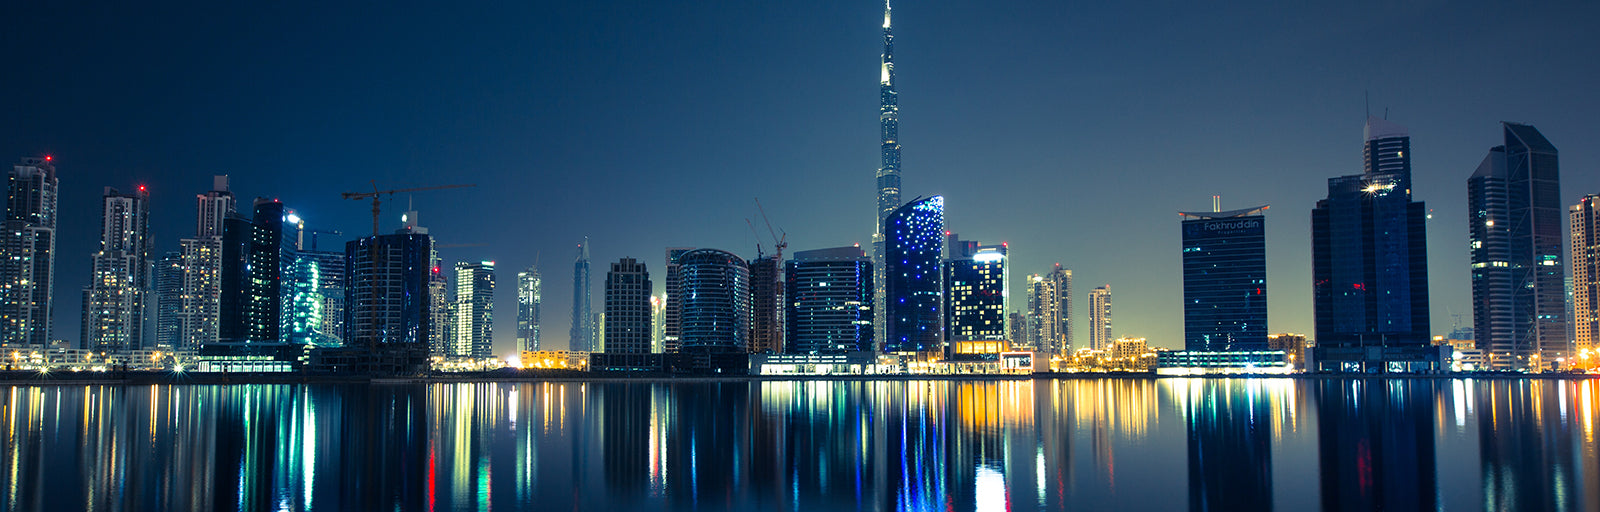 Panoramic skyline Dubai